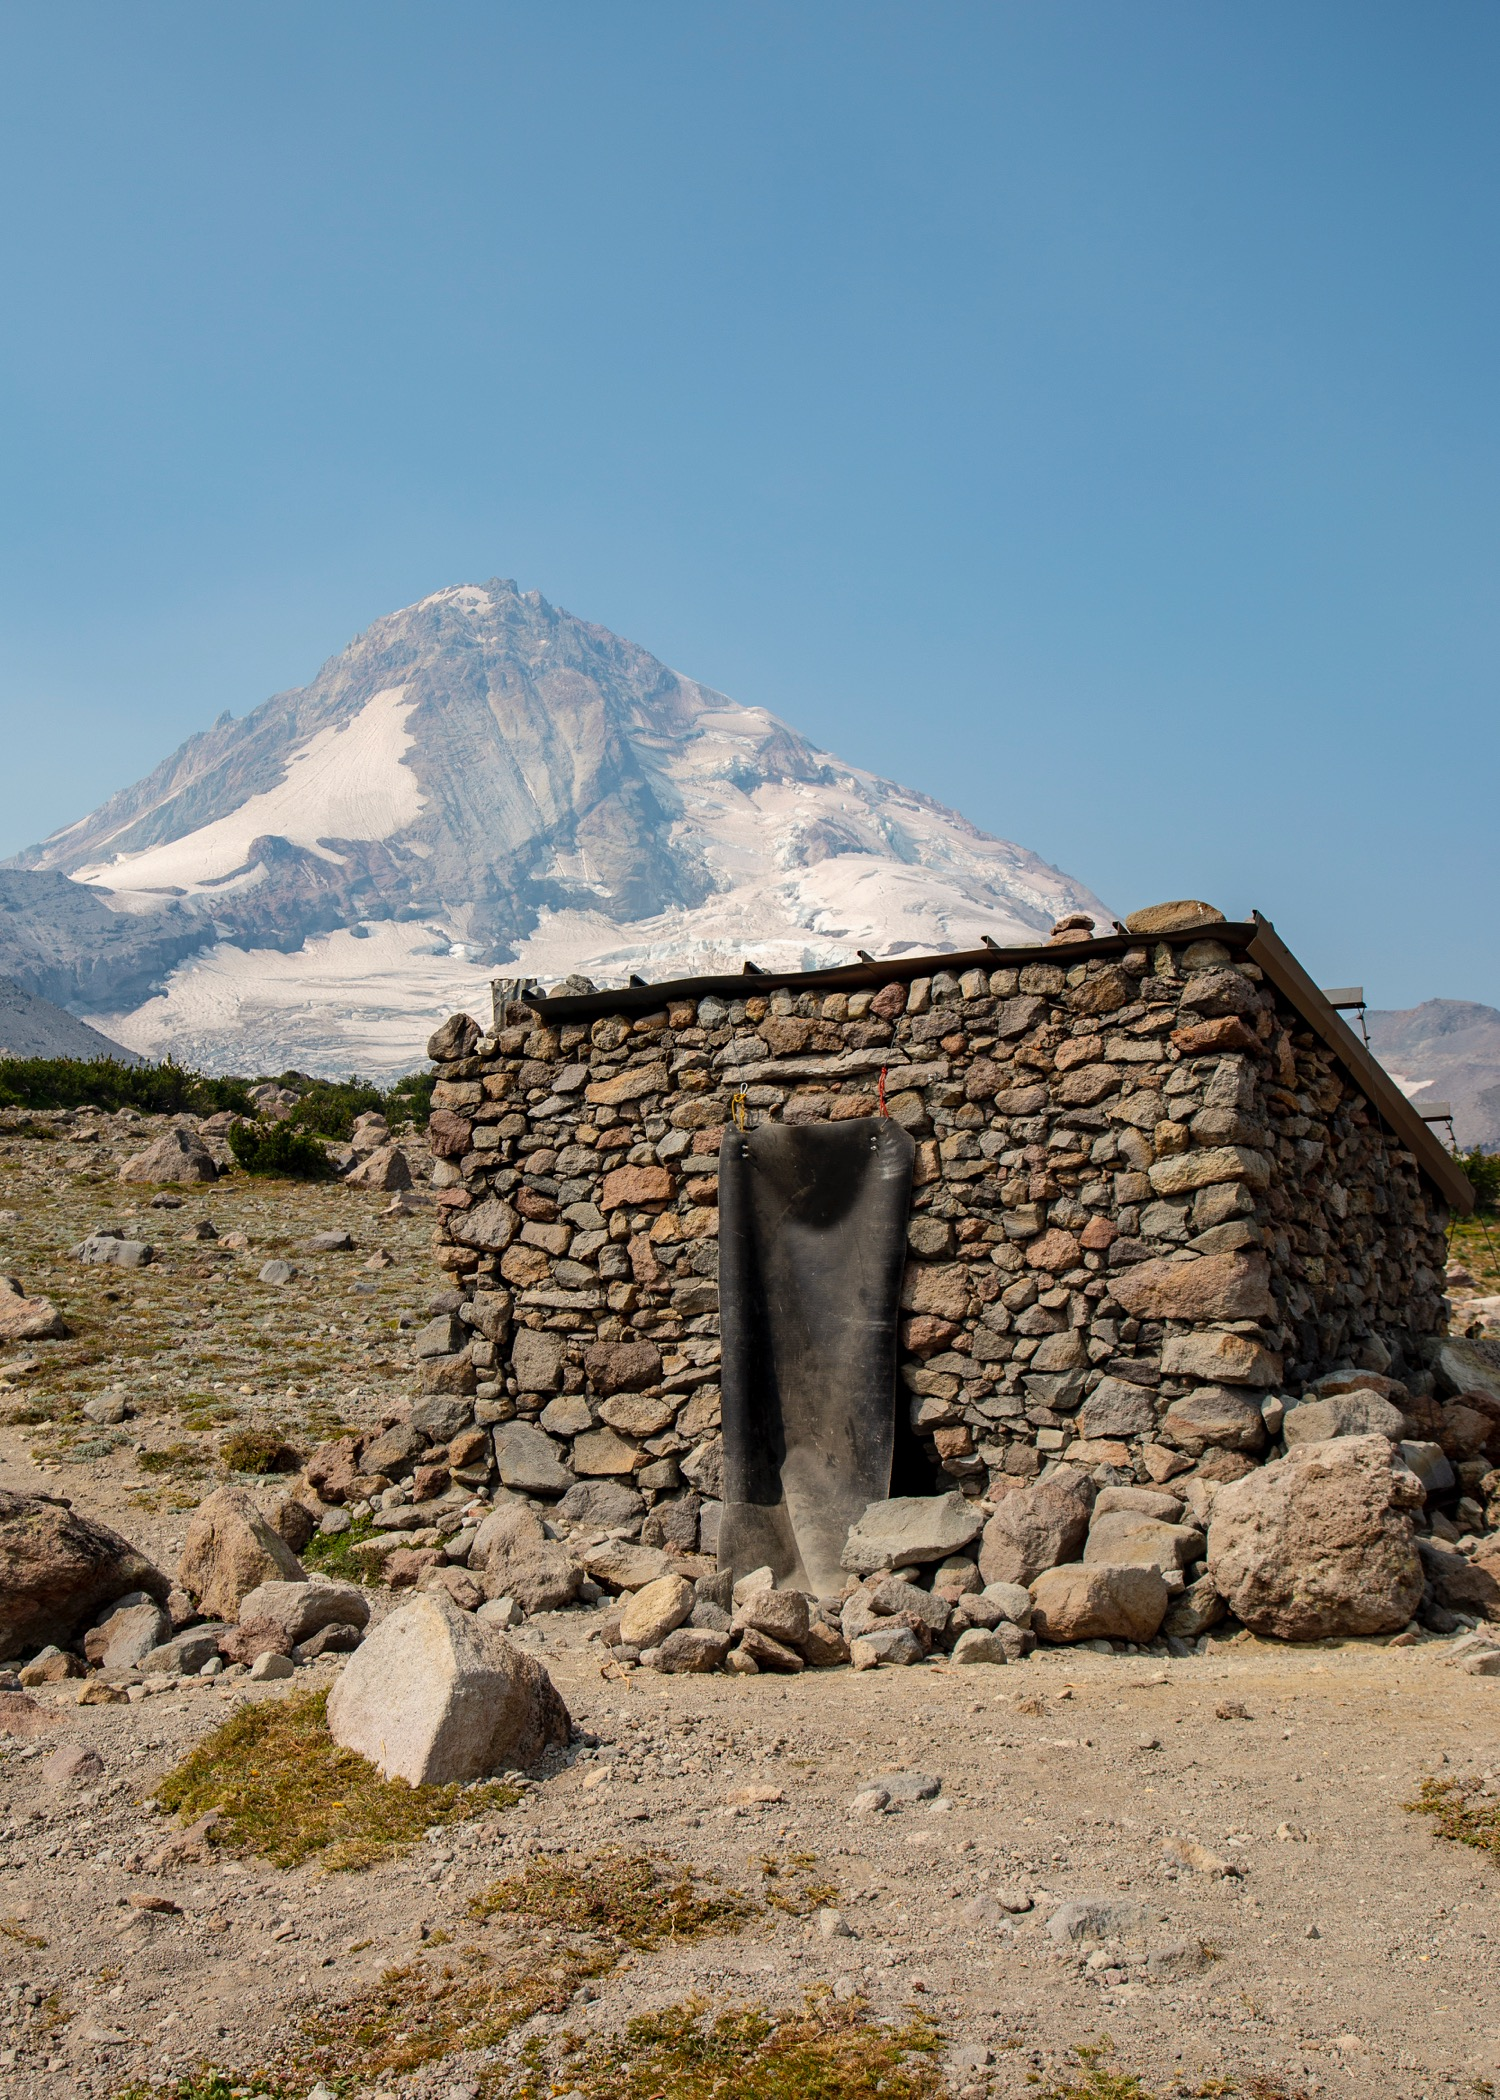 The old mountaineering hut on the trail.